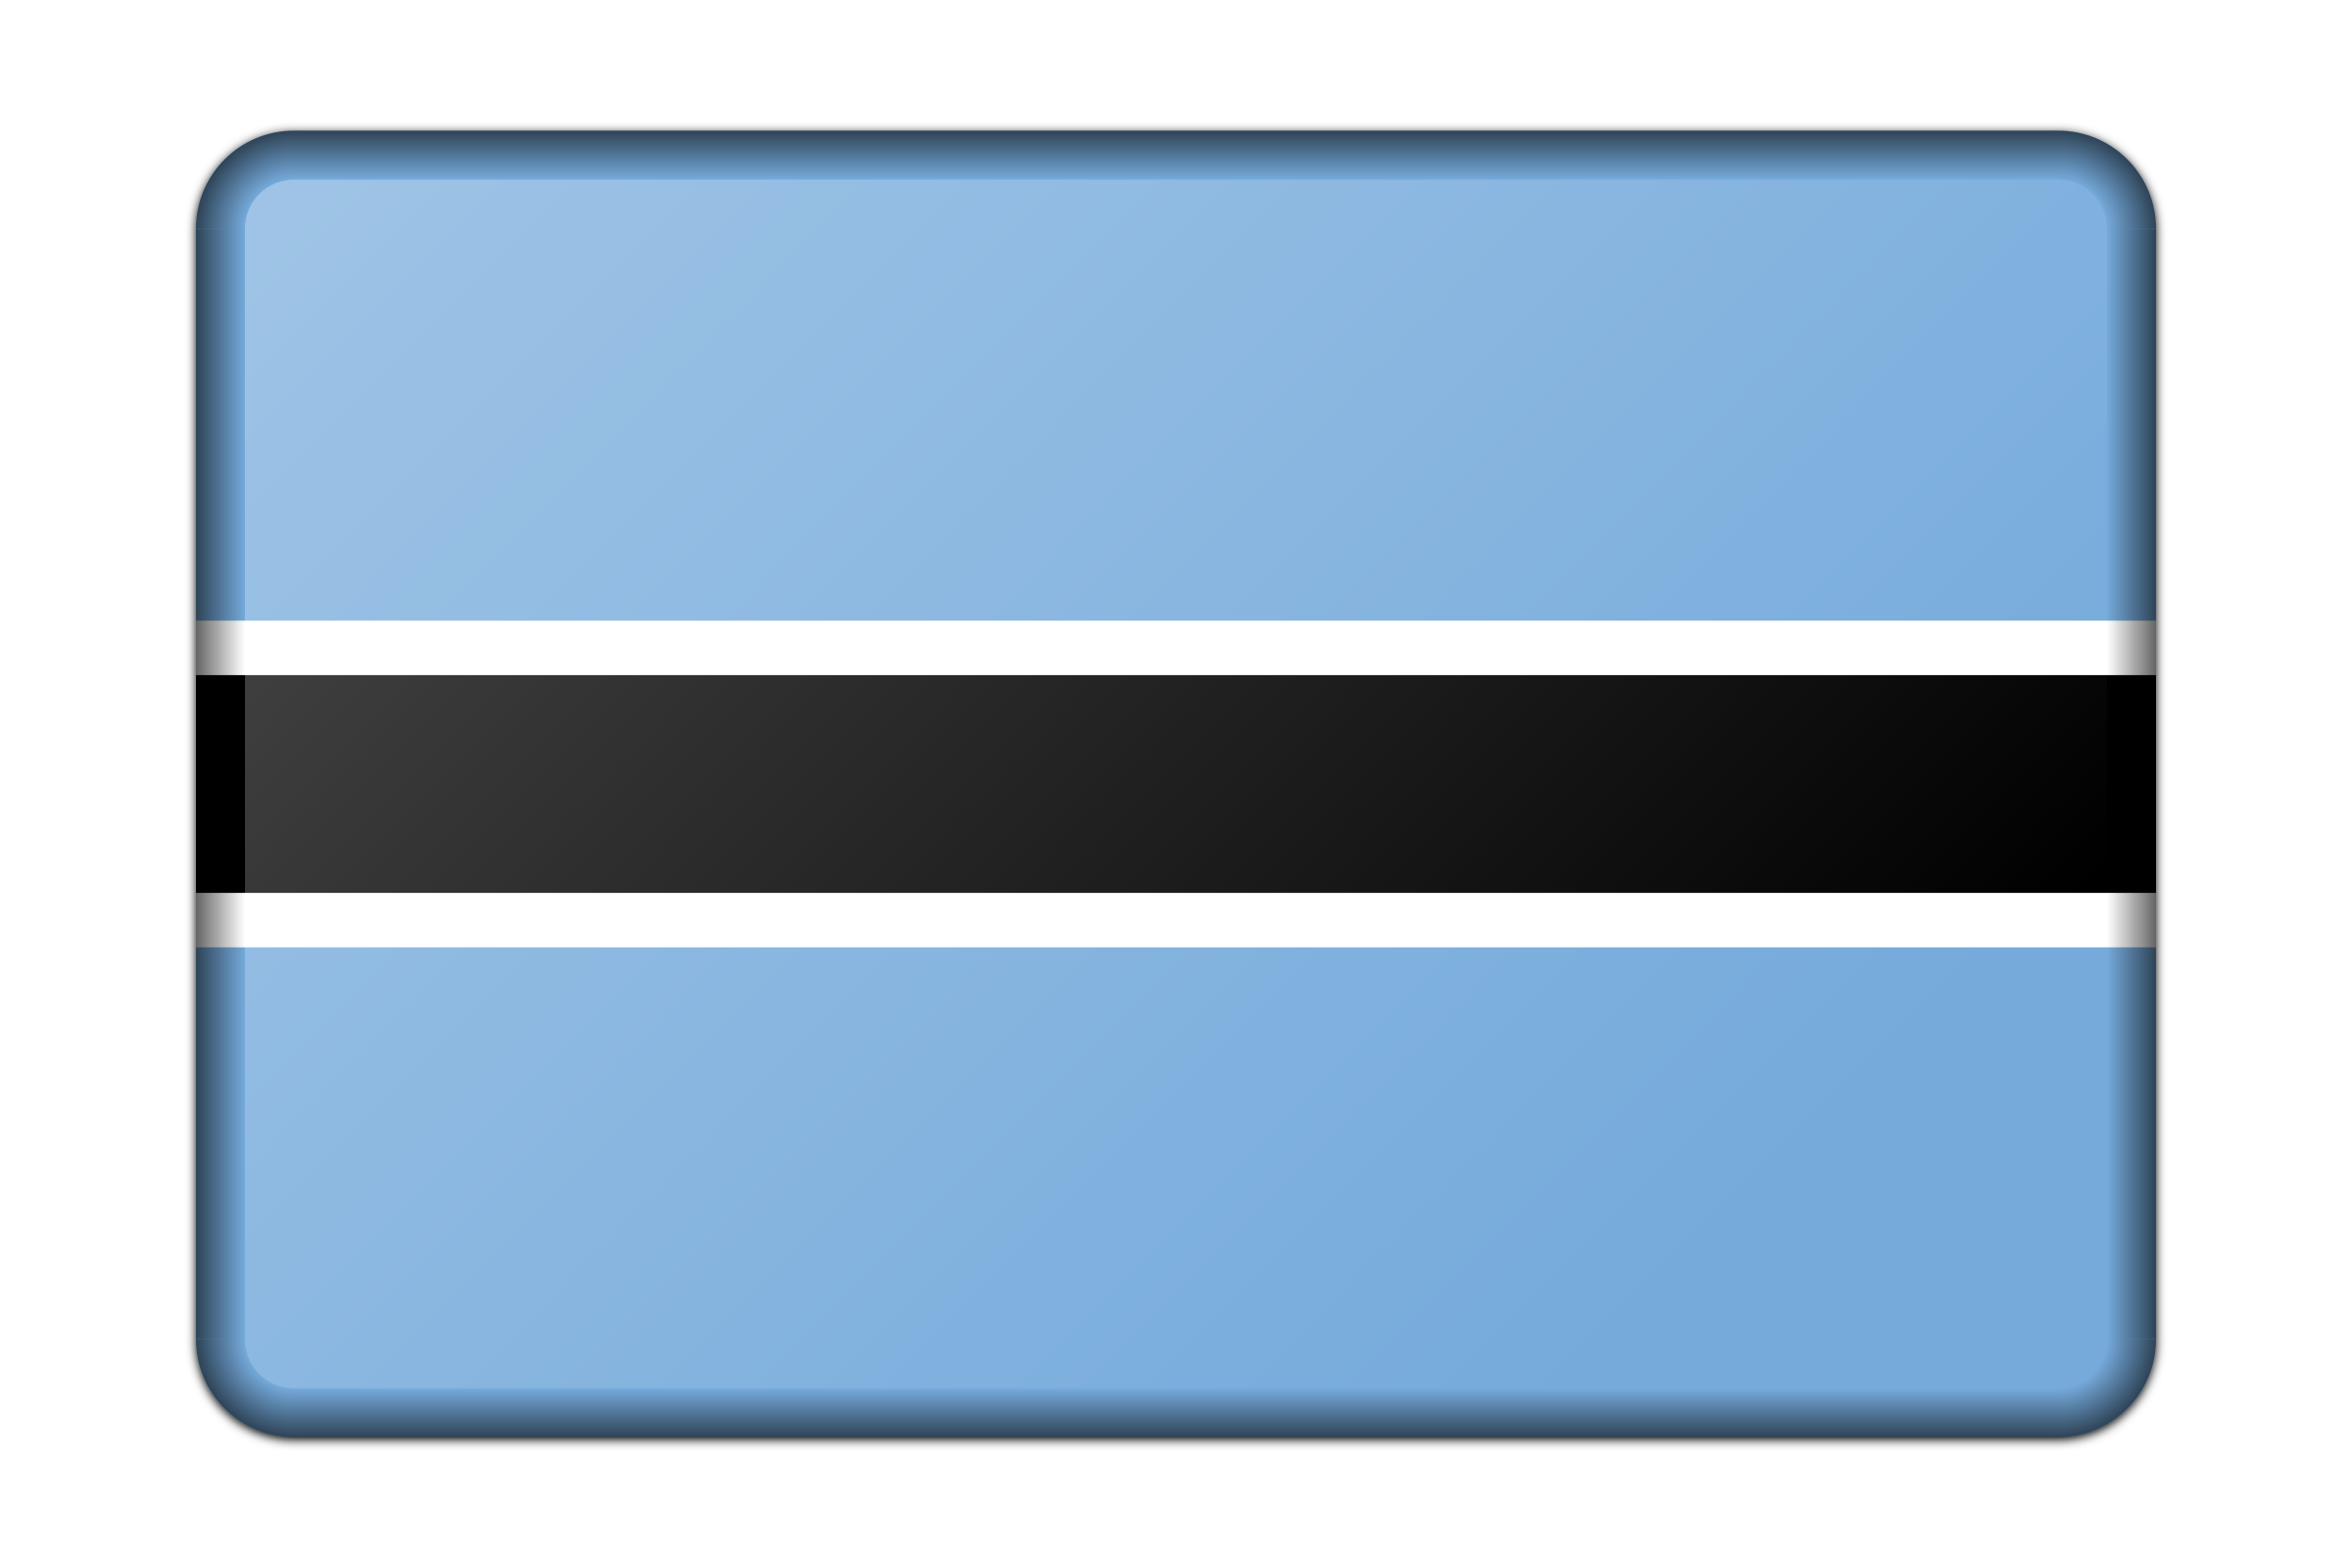 Botswana flag (bevelled) by Firkin